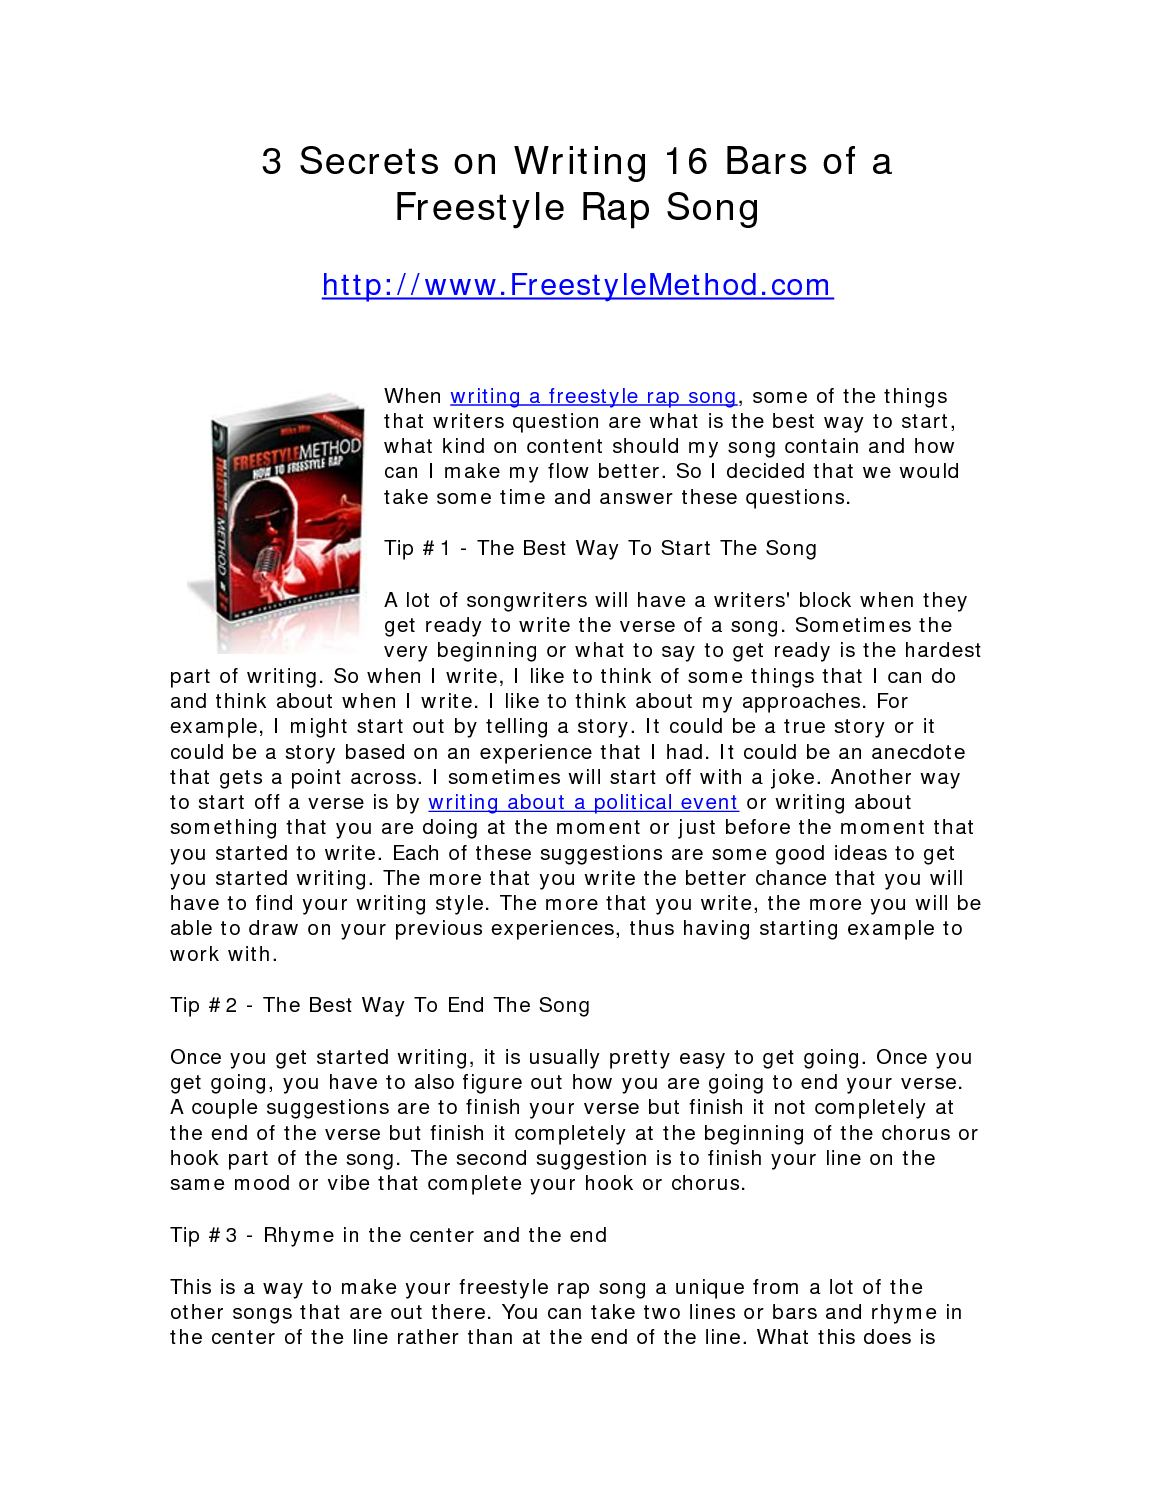 calaméo 3 secrets on writing 16 bars of a freestyle rap song